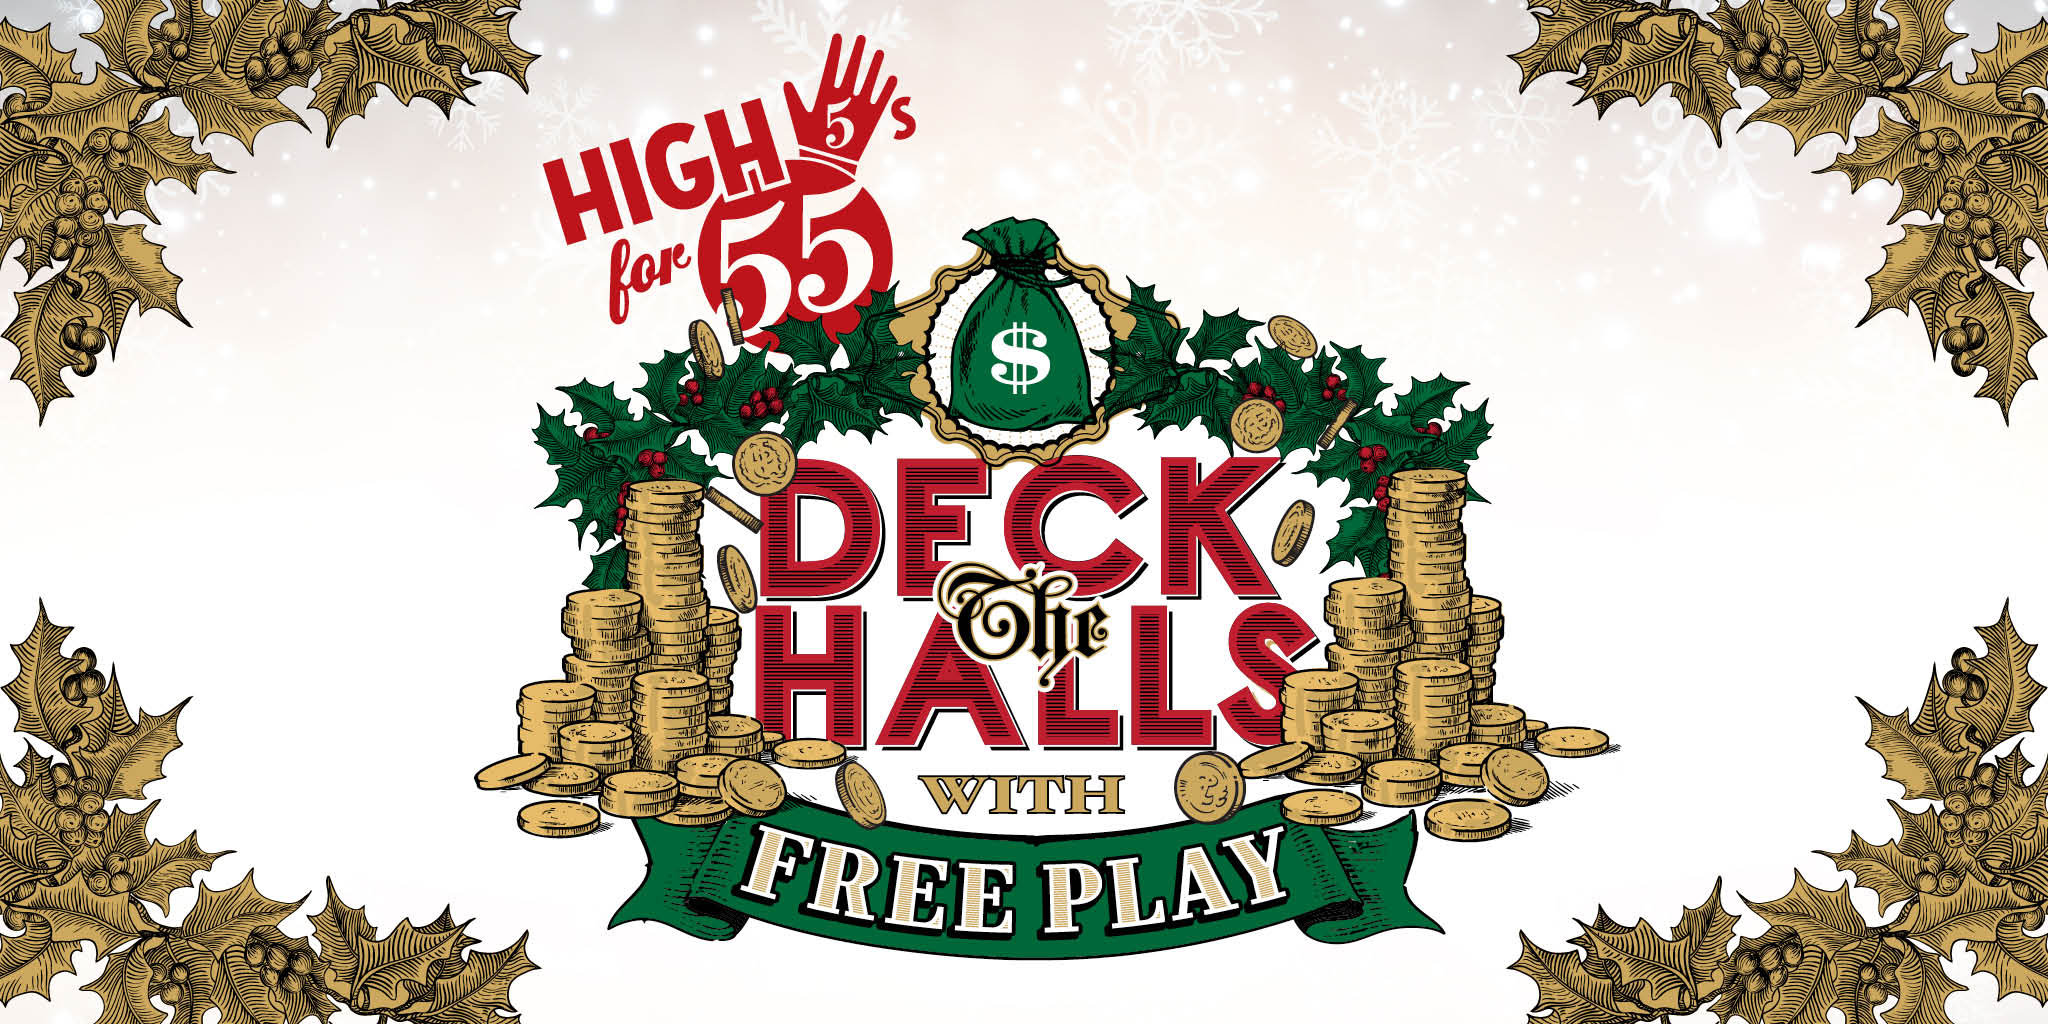 High 5s for 55s - Deck the Halls with Free Play